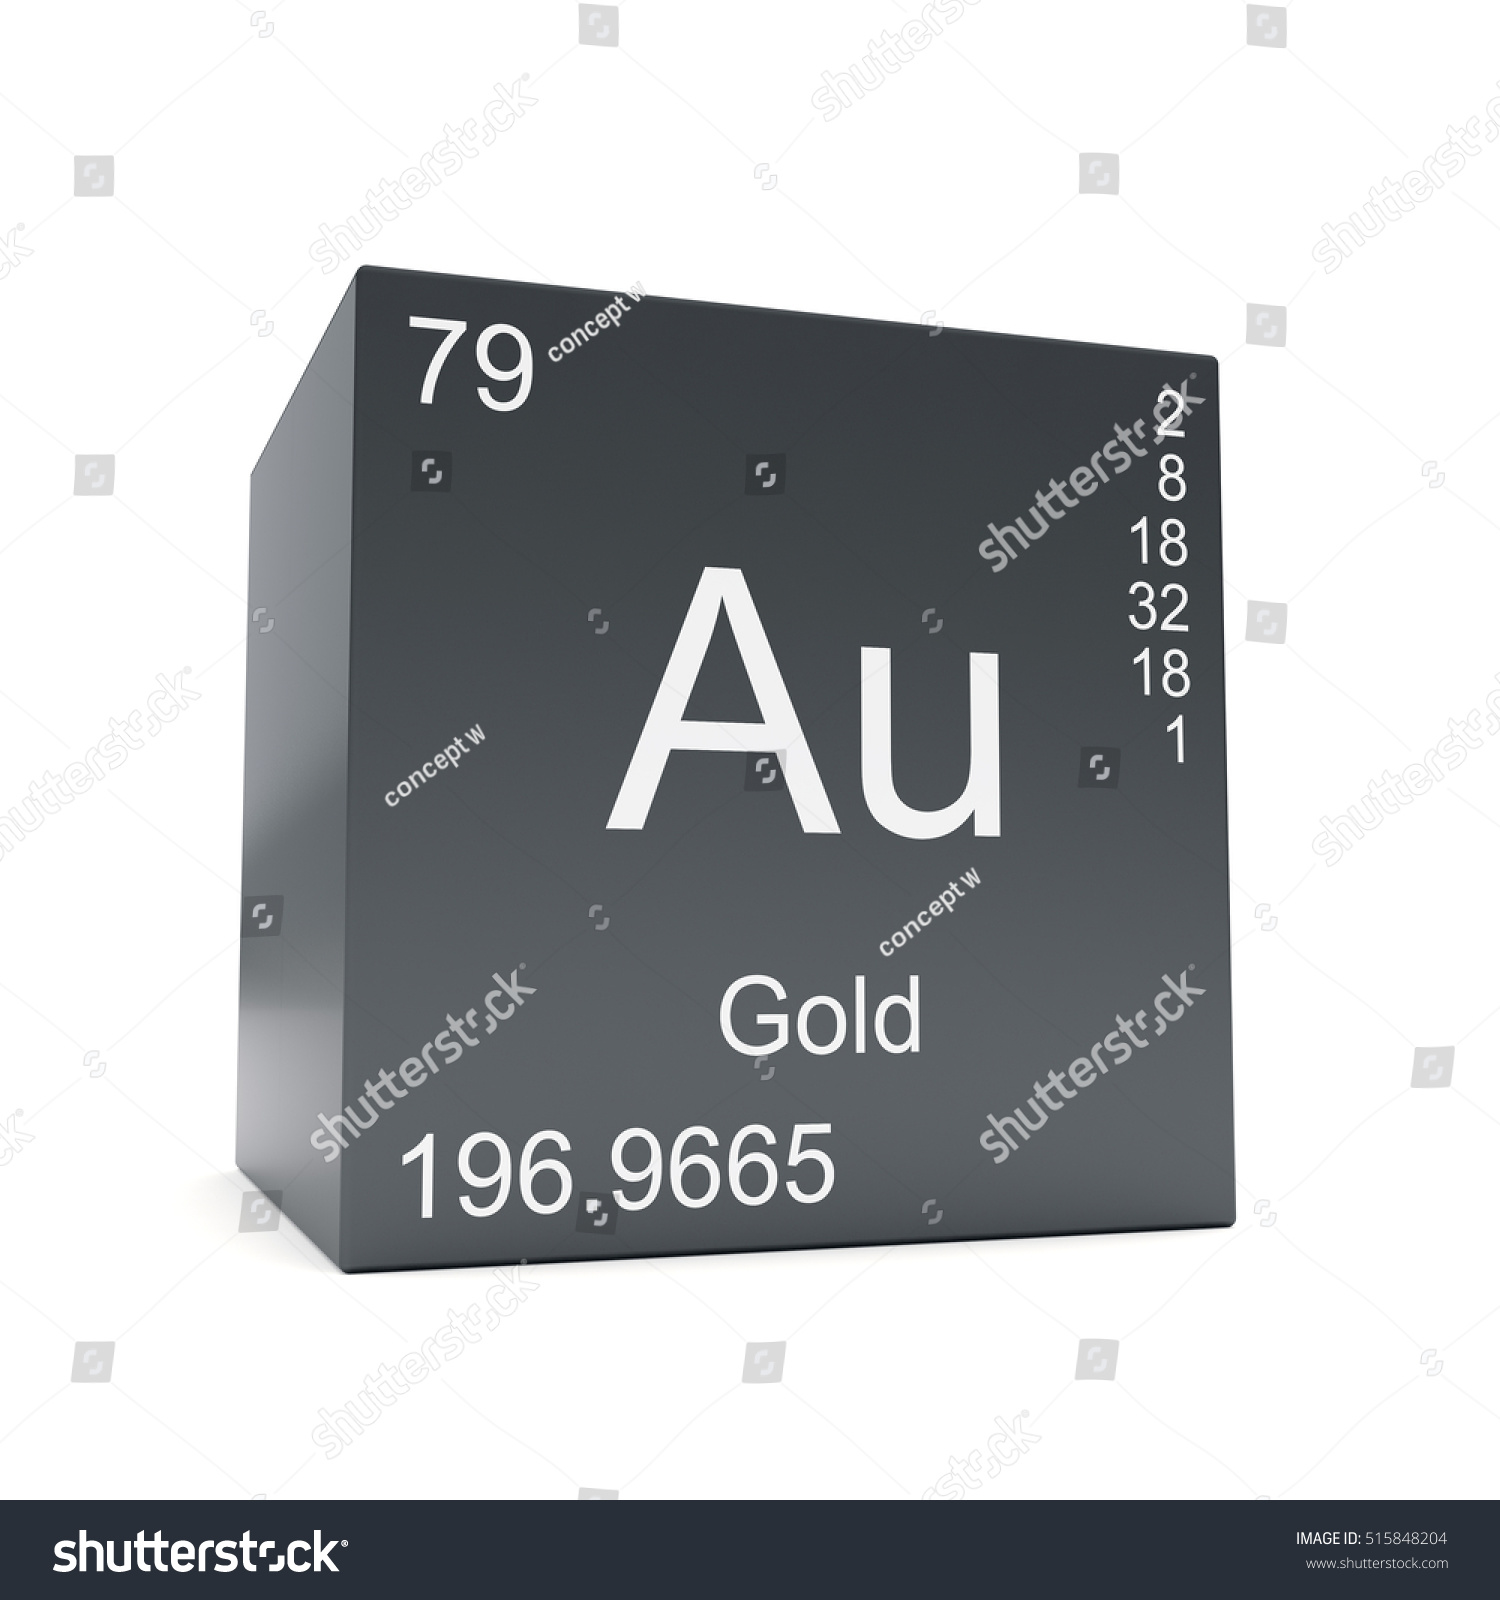 Gold chemical element symbol periodic table stock illustration gold chemical element symbol from the periodic table displayed on black cube 3d render gamestrikefo Image collections